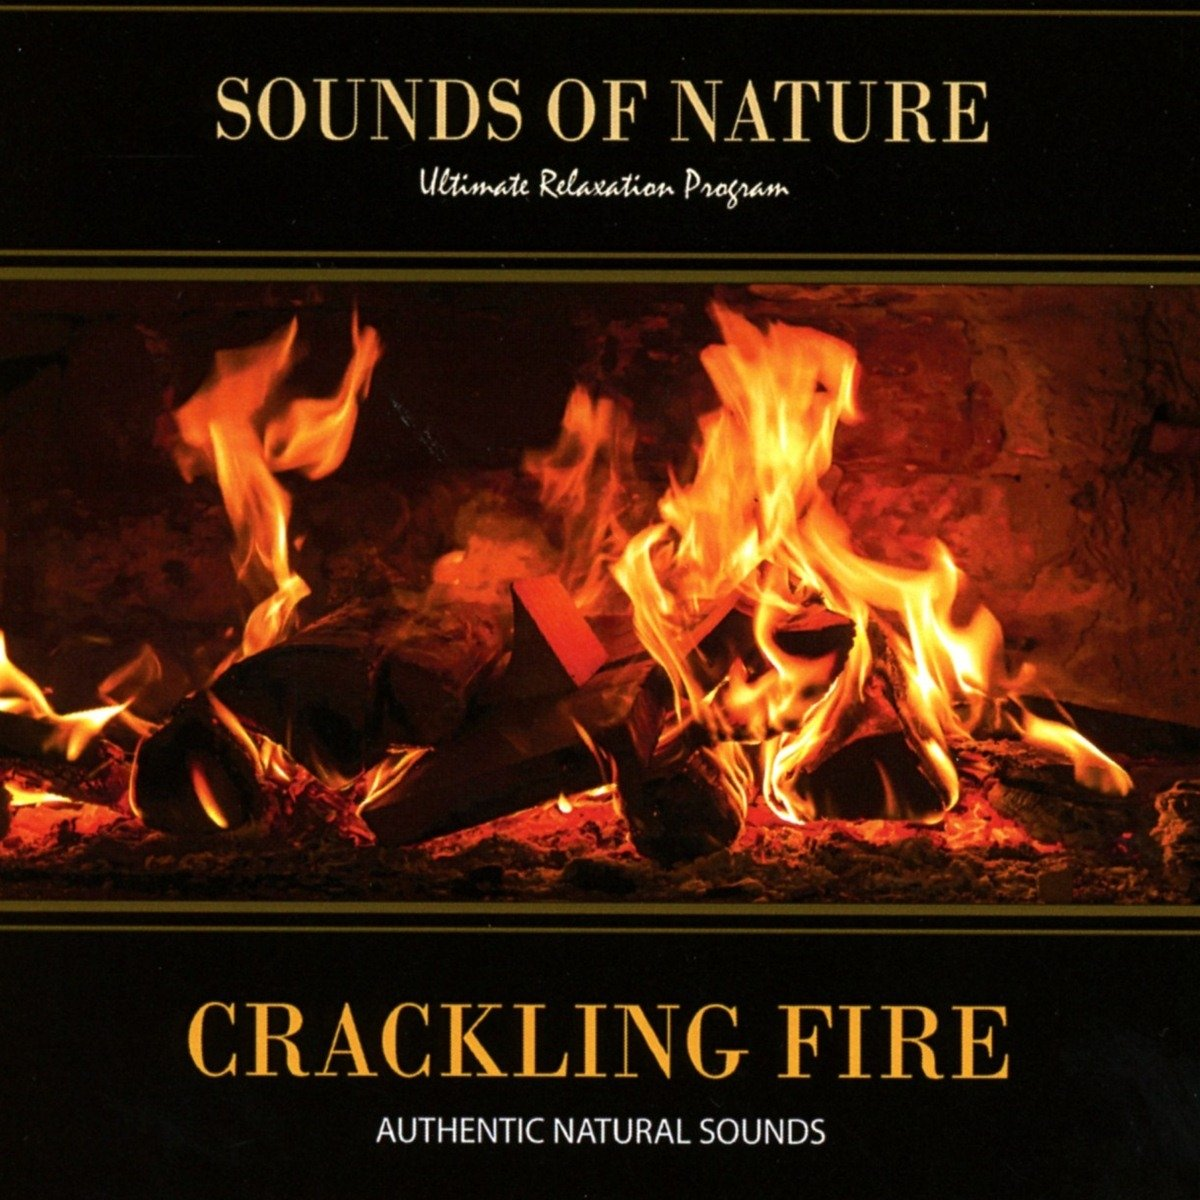 Relaxing Sounds Of Nature Crackling Fire Sounds Of Nature